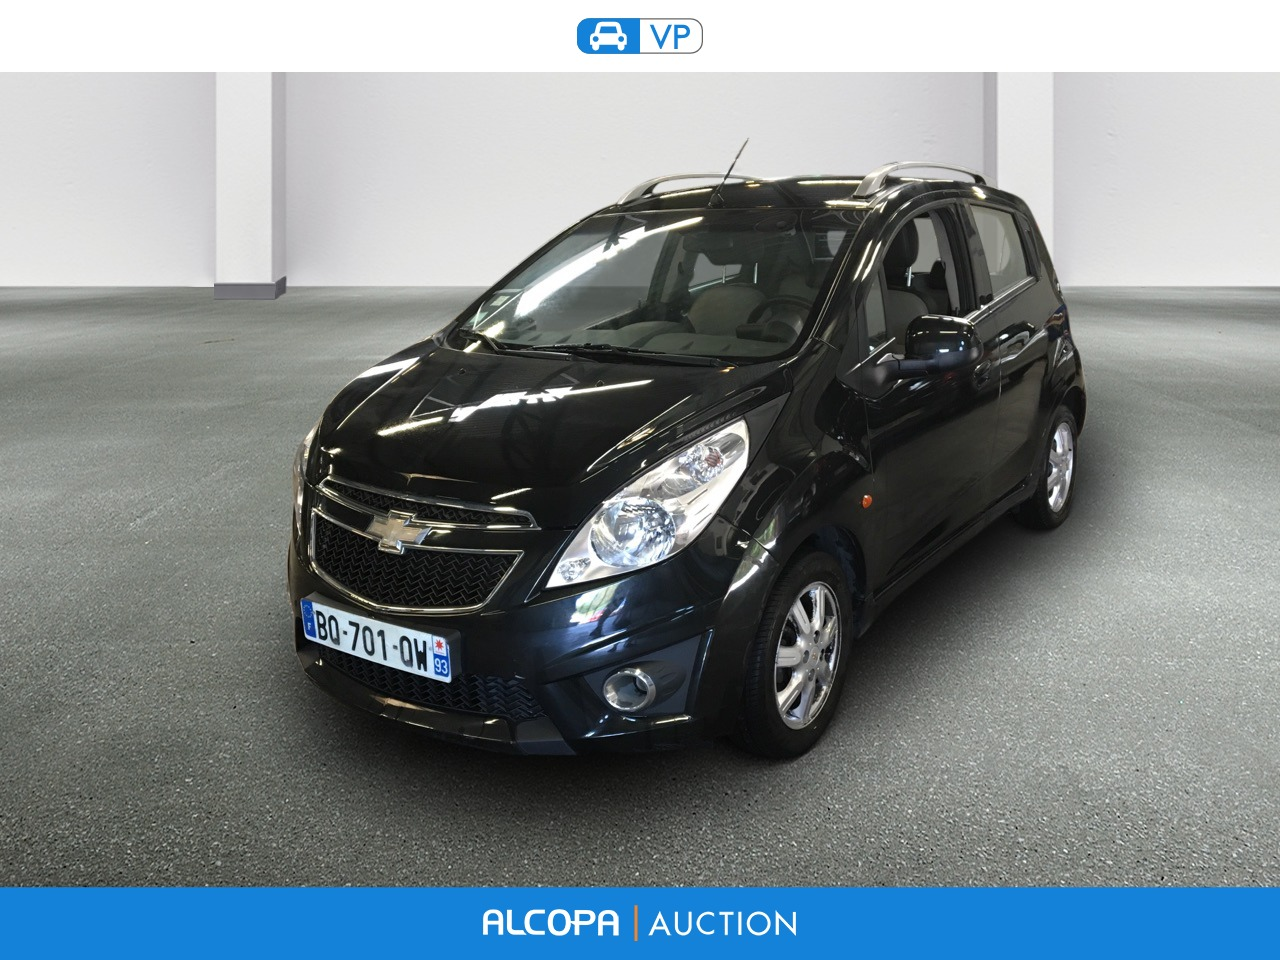 chevrolet spark - spark 1.0 16v - 68 ls | alcopa auction